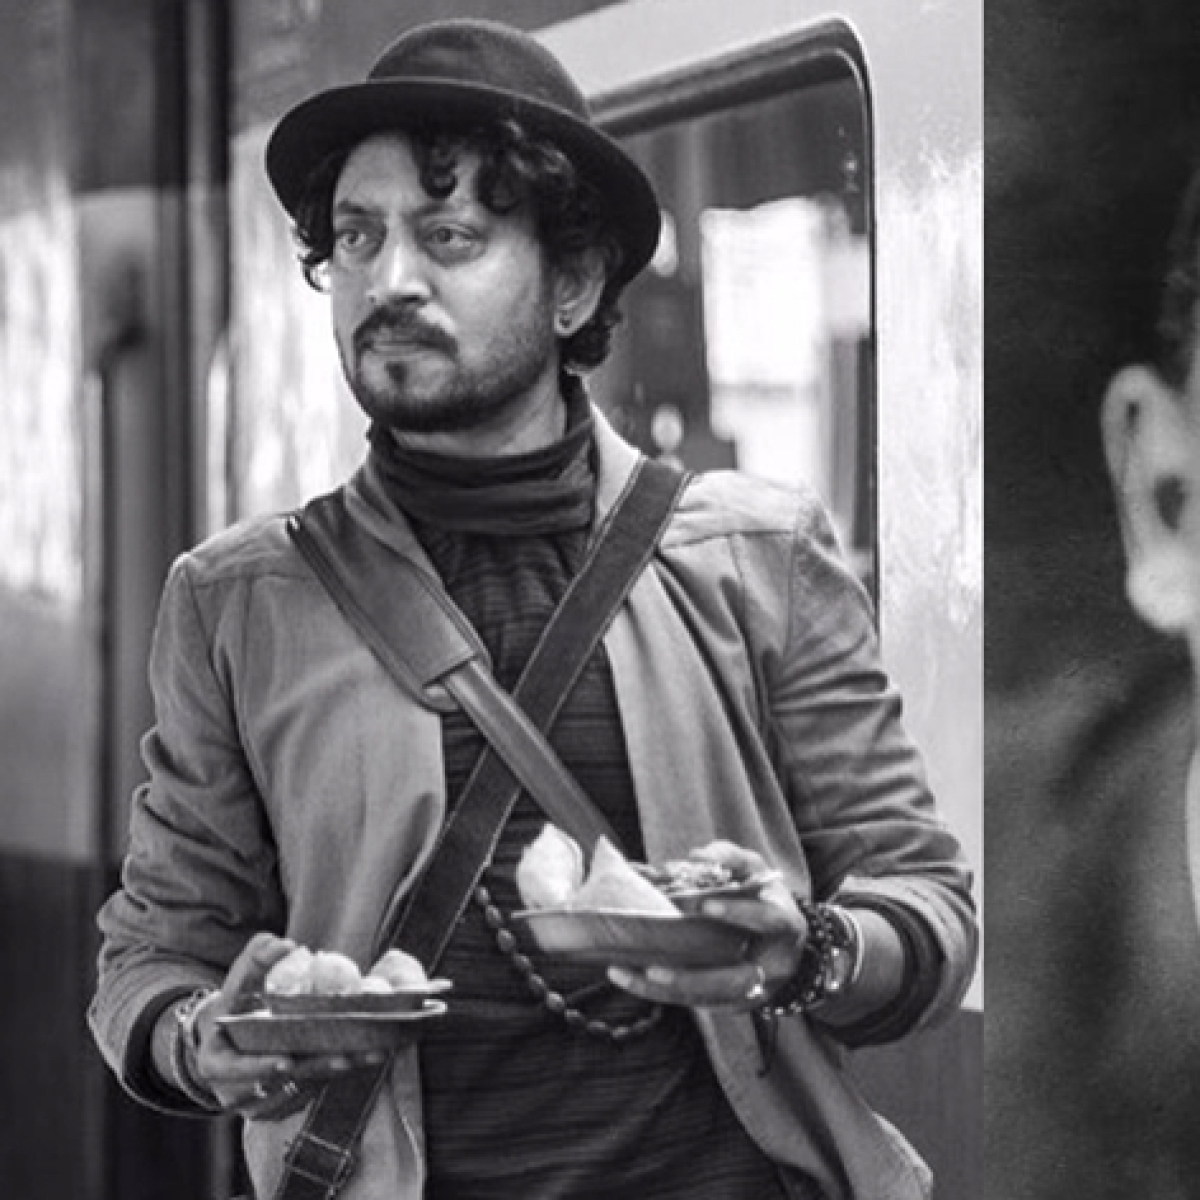 Did you know? Irrfan Khan played Lenin on Doordarshan, who also died at 53, due to health failure